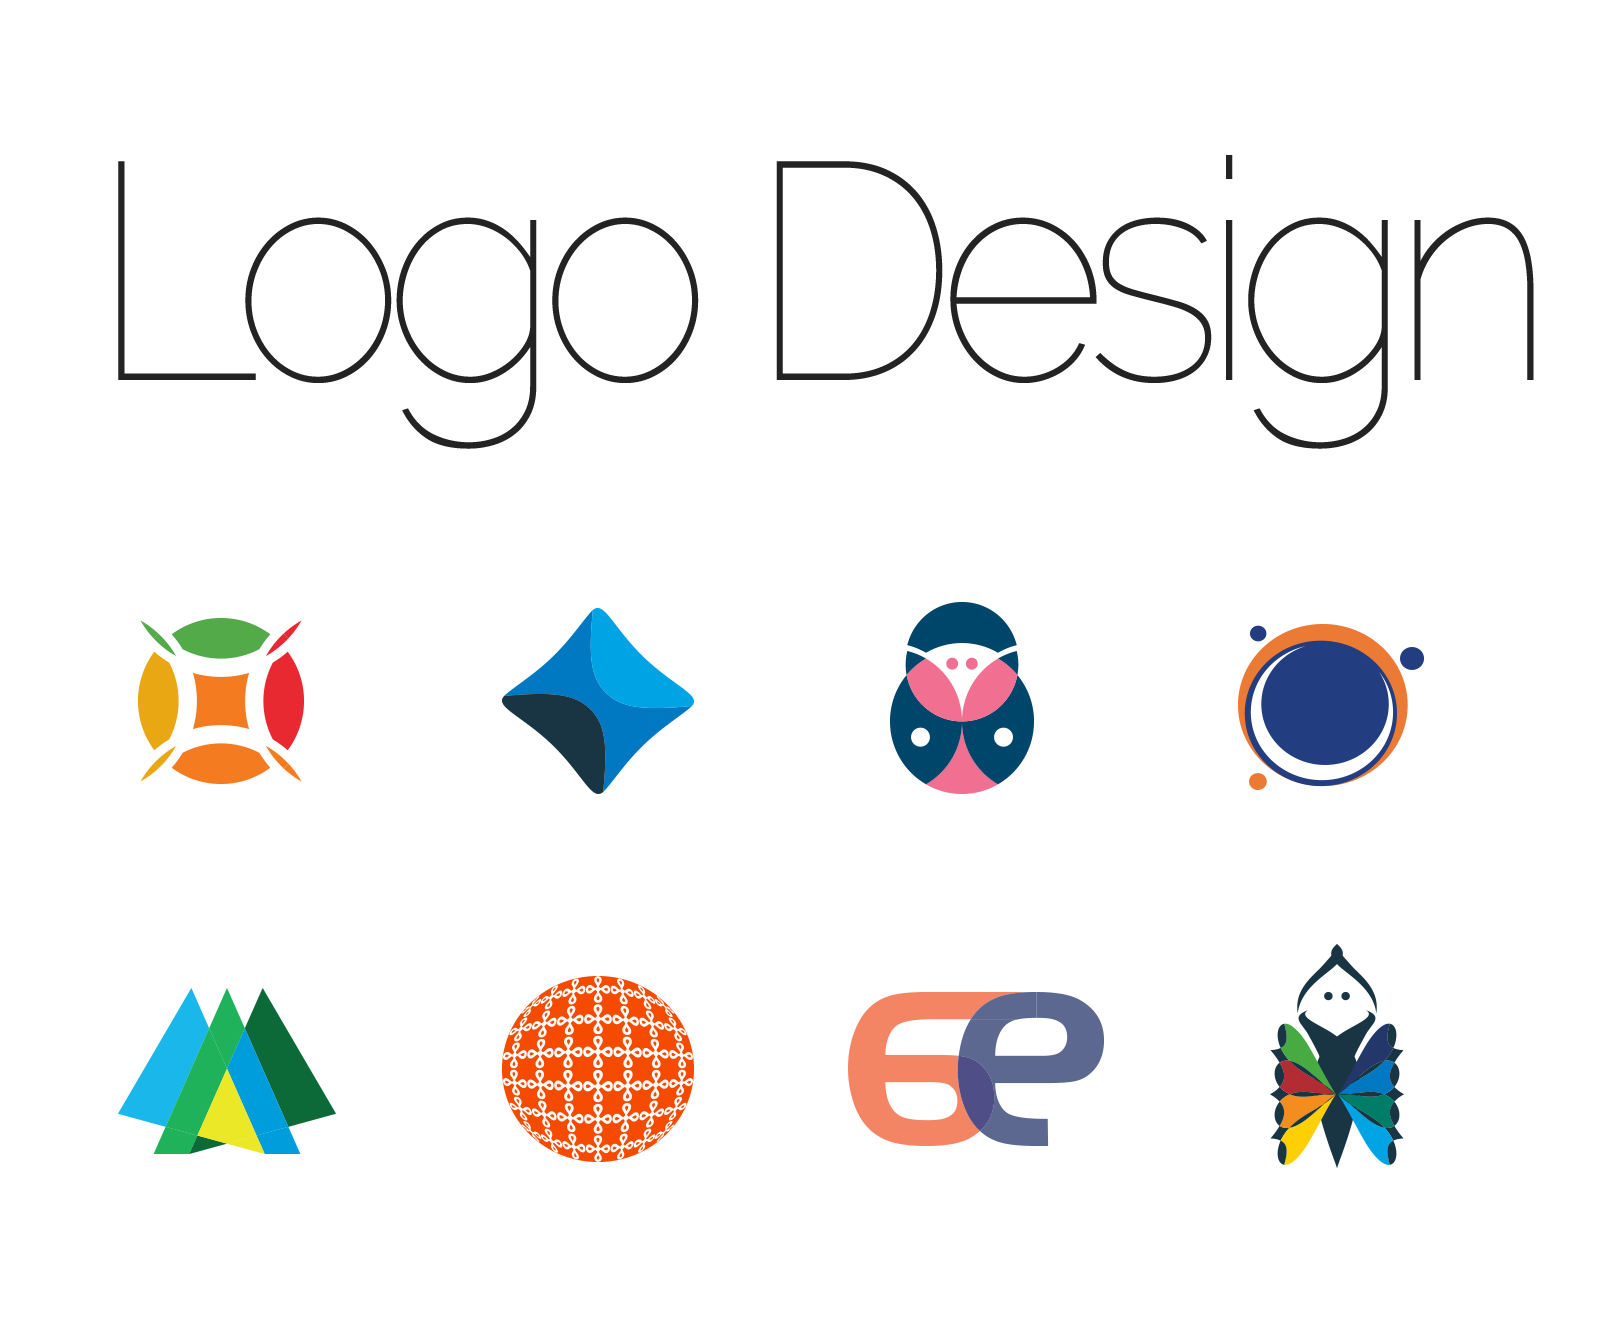 Cool logos creator clipart images gallery for free download.